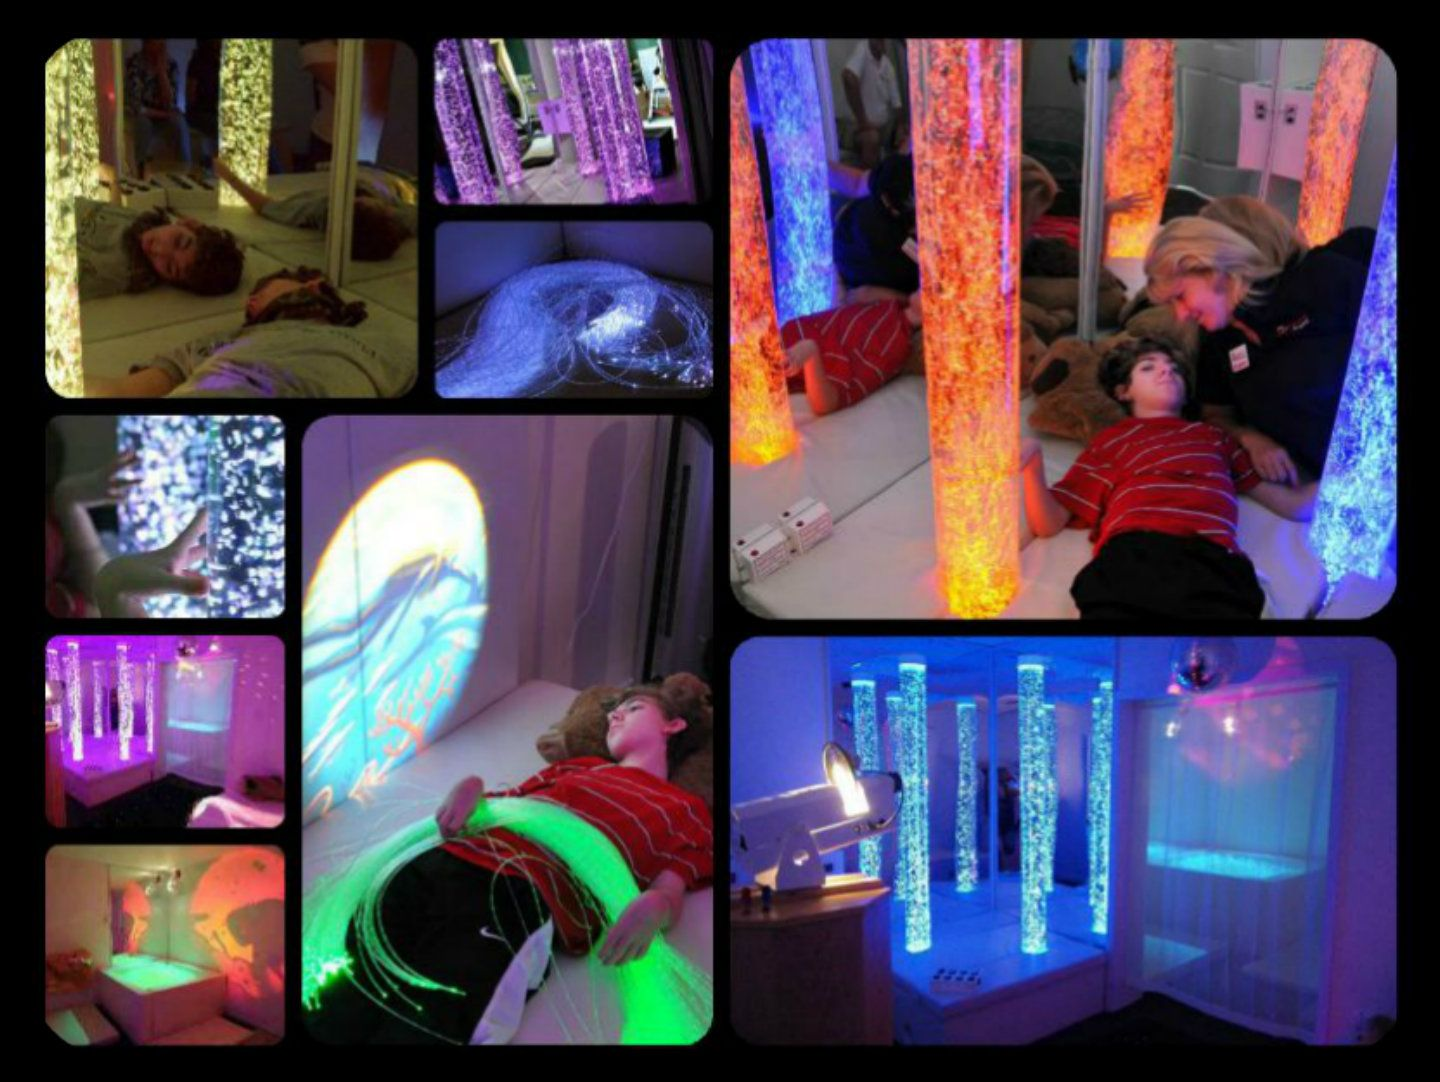 MultiSensory Room Helps Special Needs Children Cope